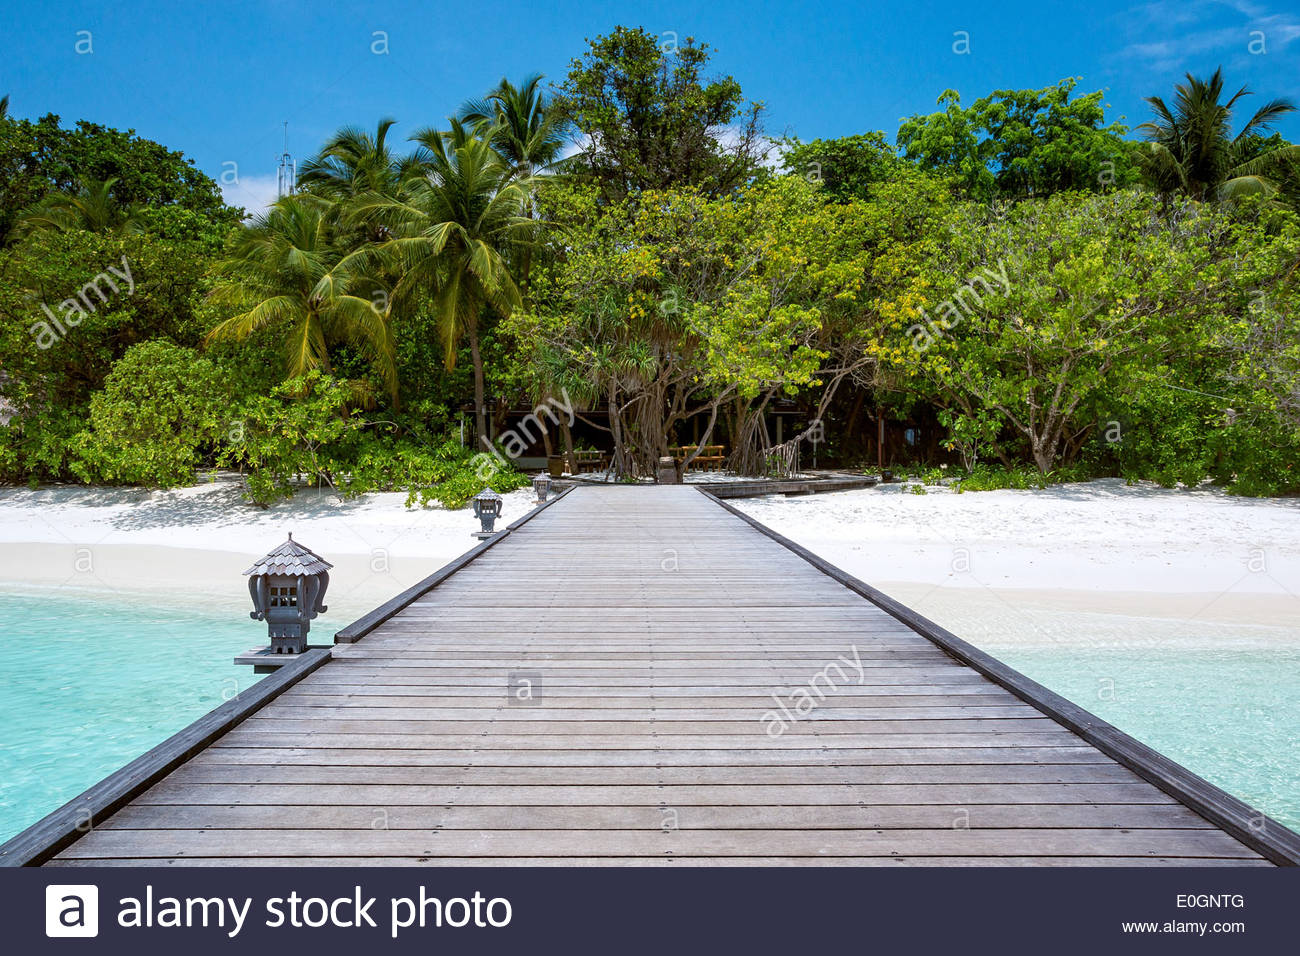 Maldives : main jetty (pier) and beach of Royal Island resort and spa on Horubadhoo island - Baa atoll - Stock Image